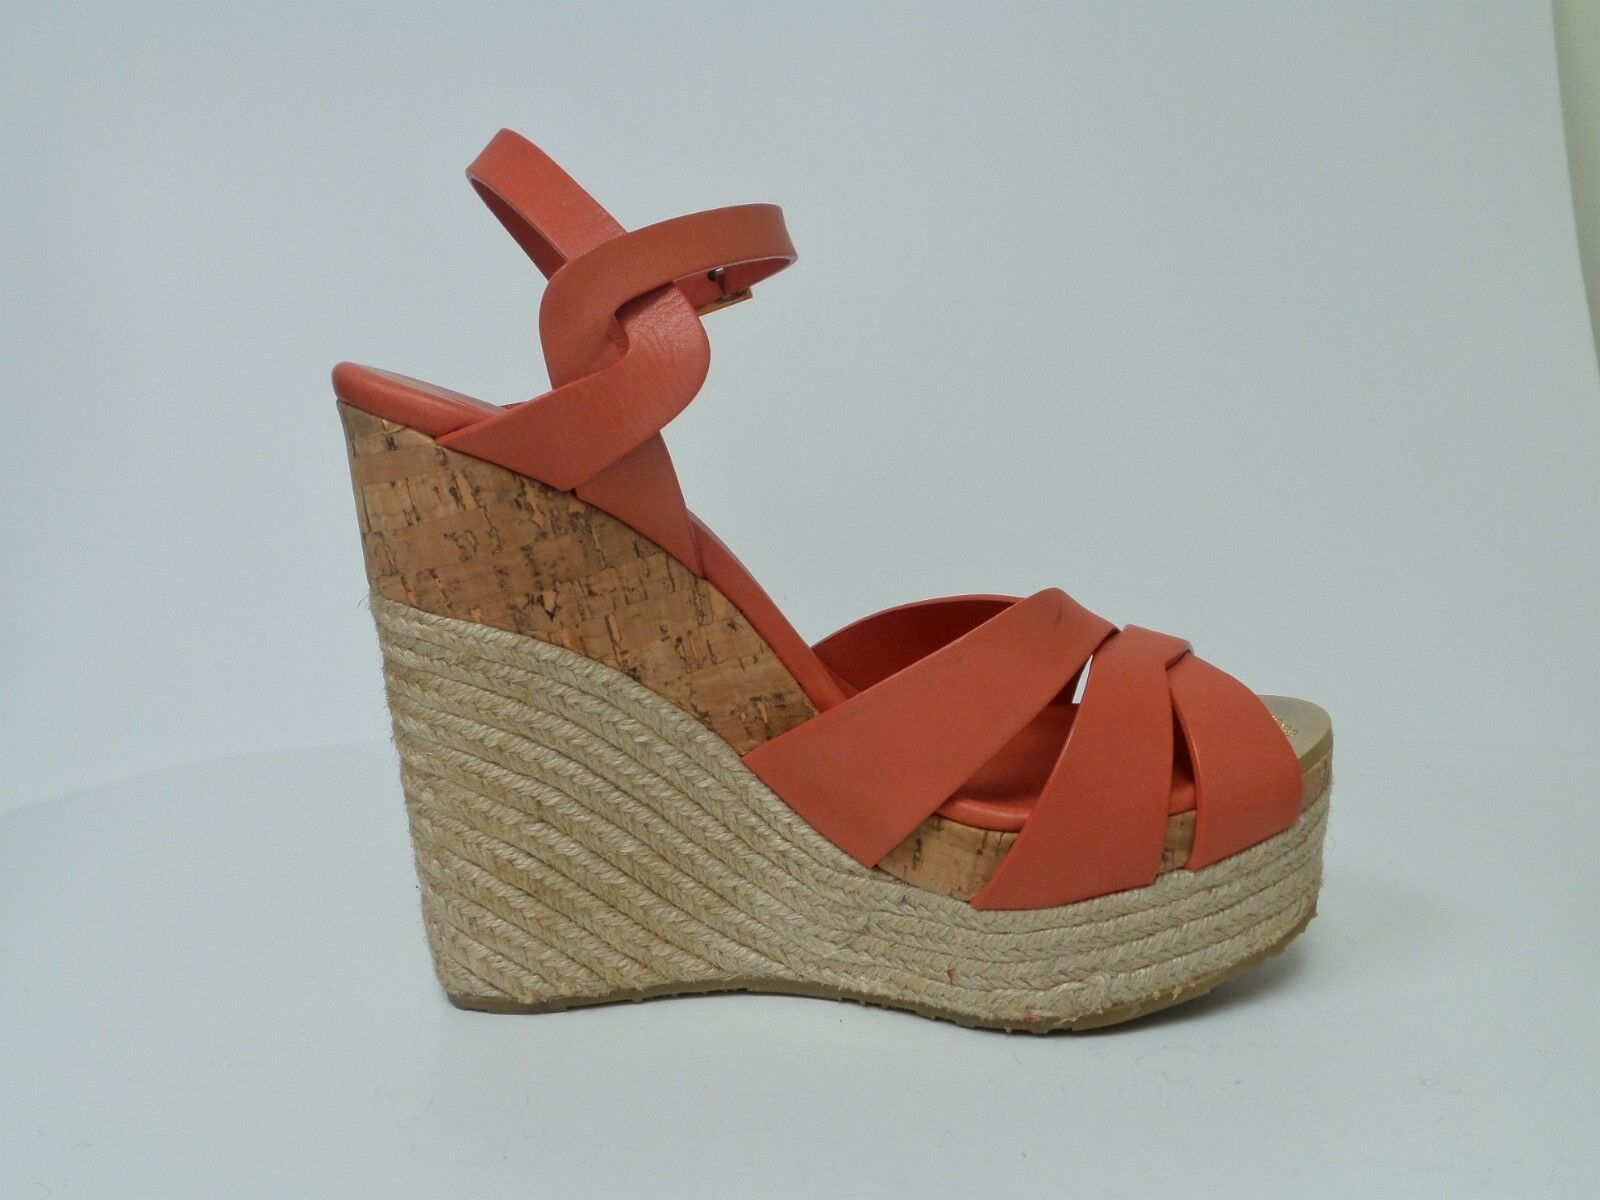 JIMMY CHOO Peach Leather Wedge Sandals Taille 39 (8.5 US)